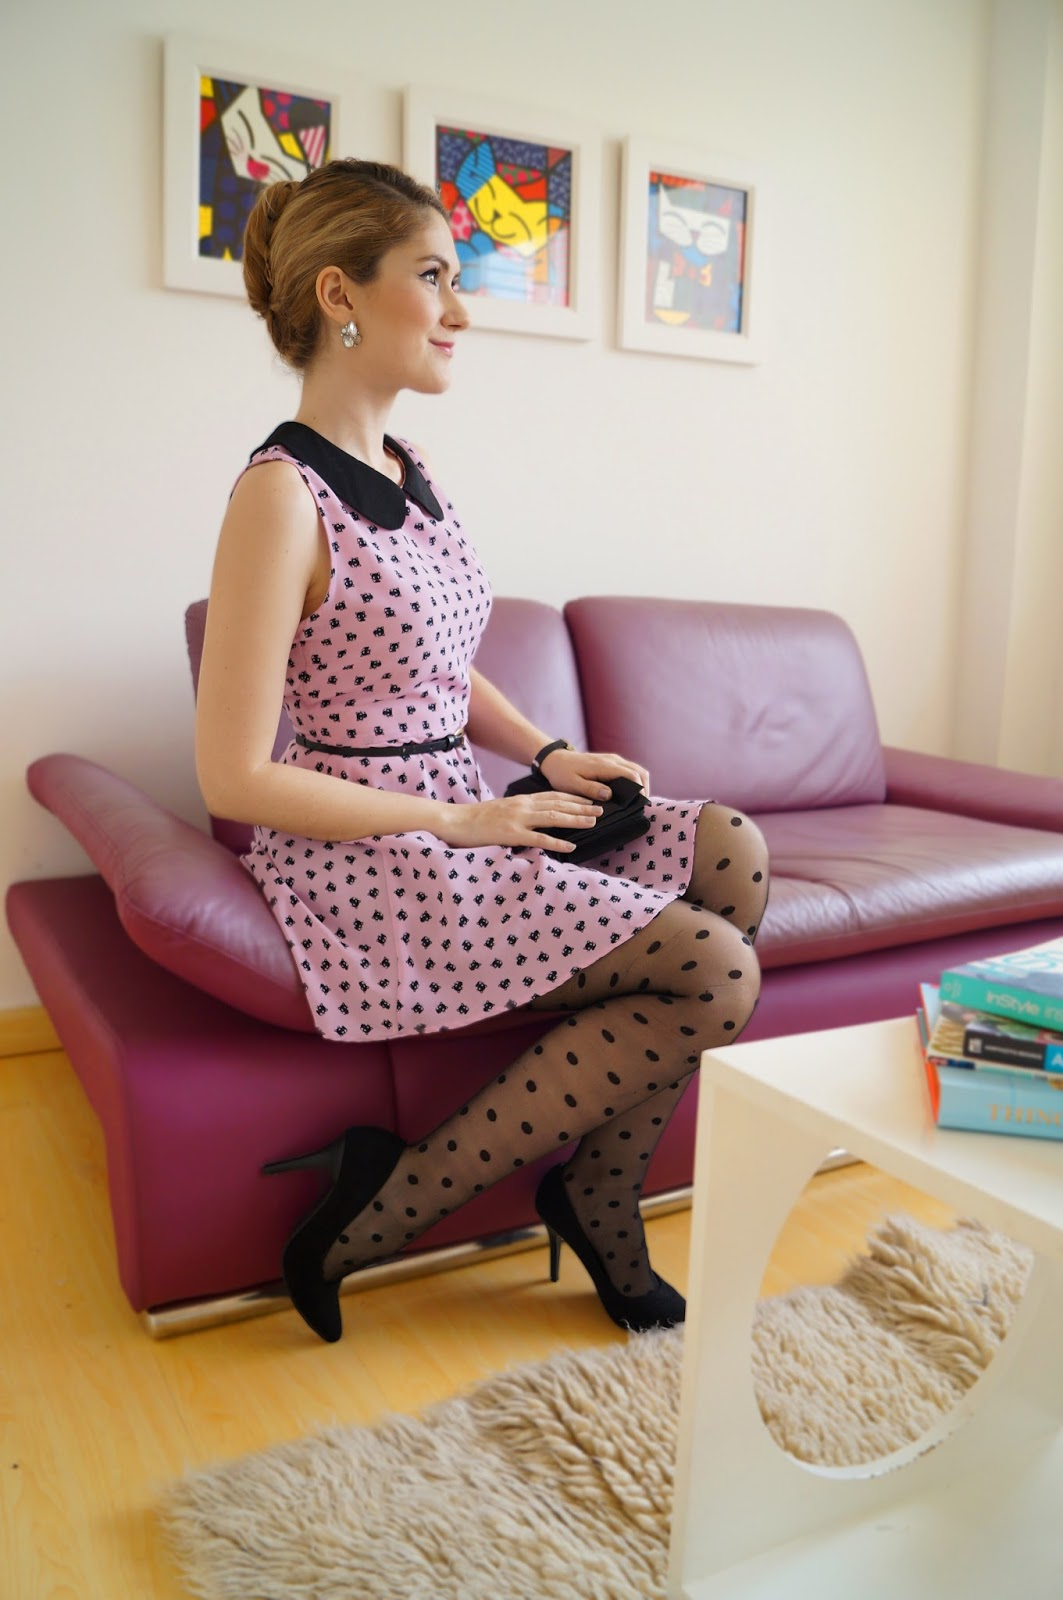 The Joy of Fashion: {Outfit}: Girly in Pink and Polka dot ...